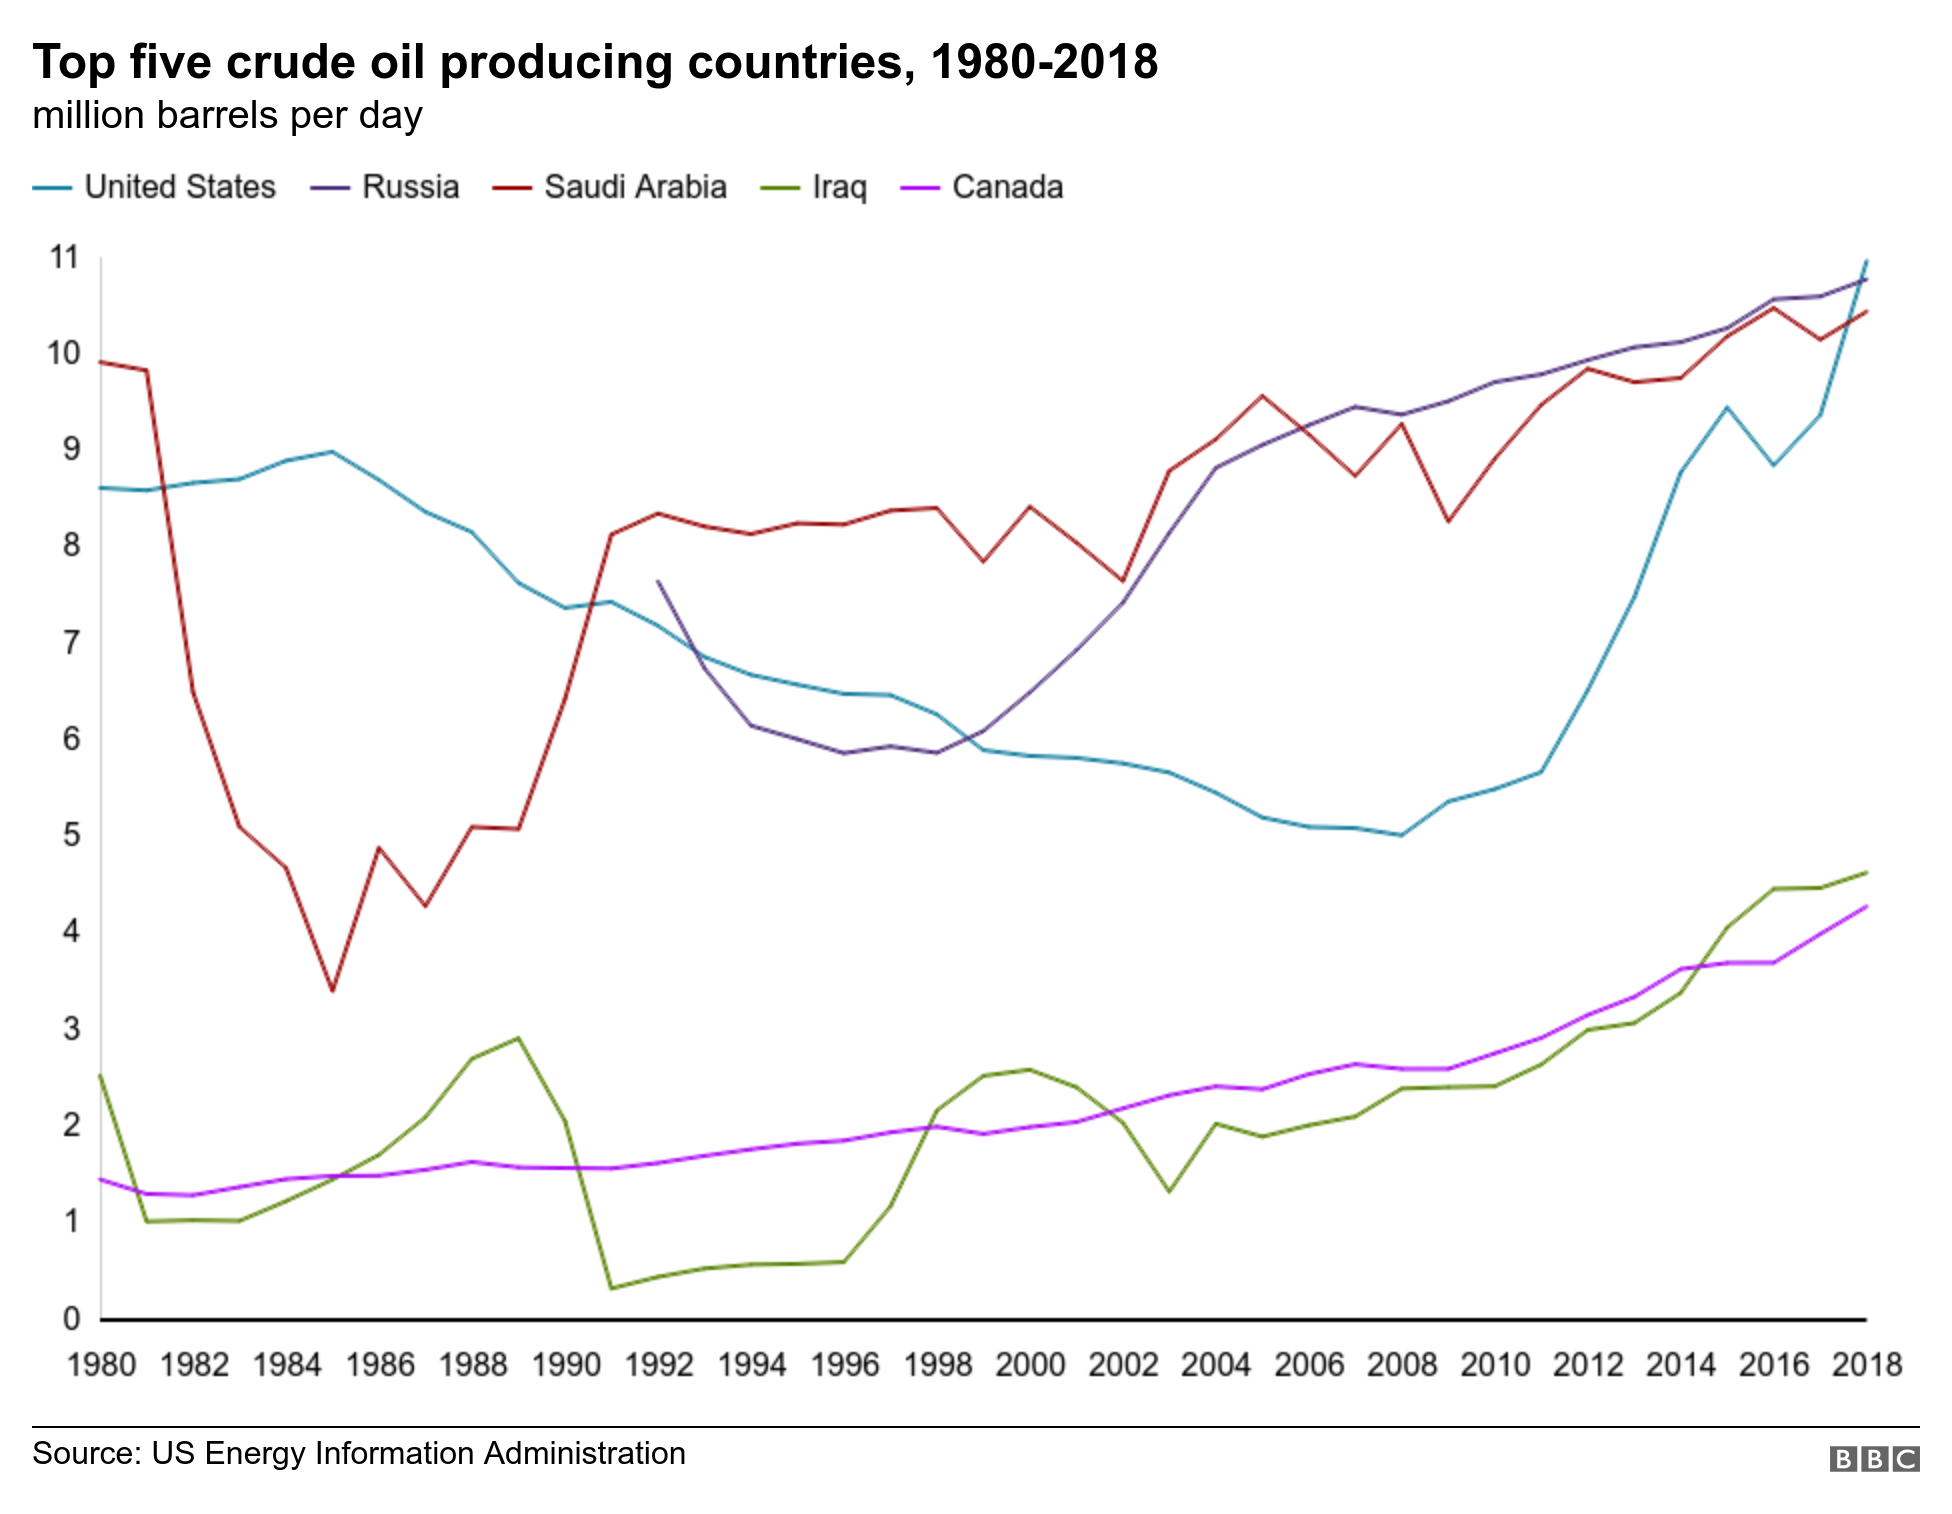 Oil producing countries in 1980-2018